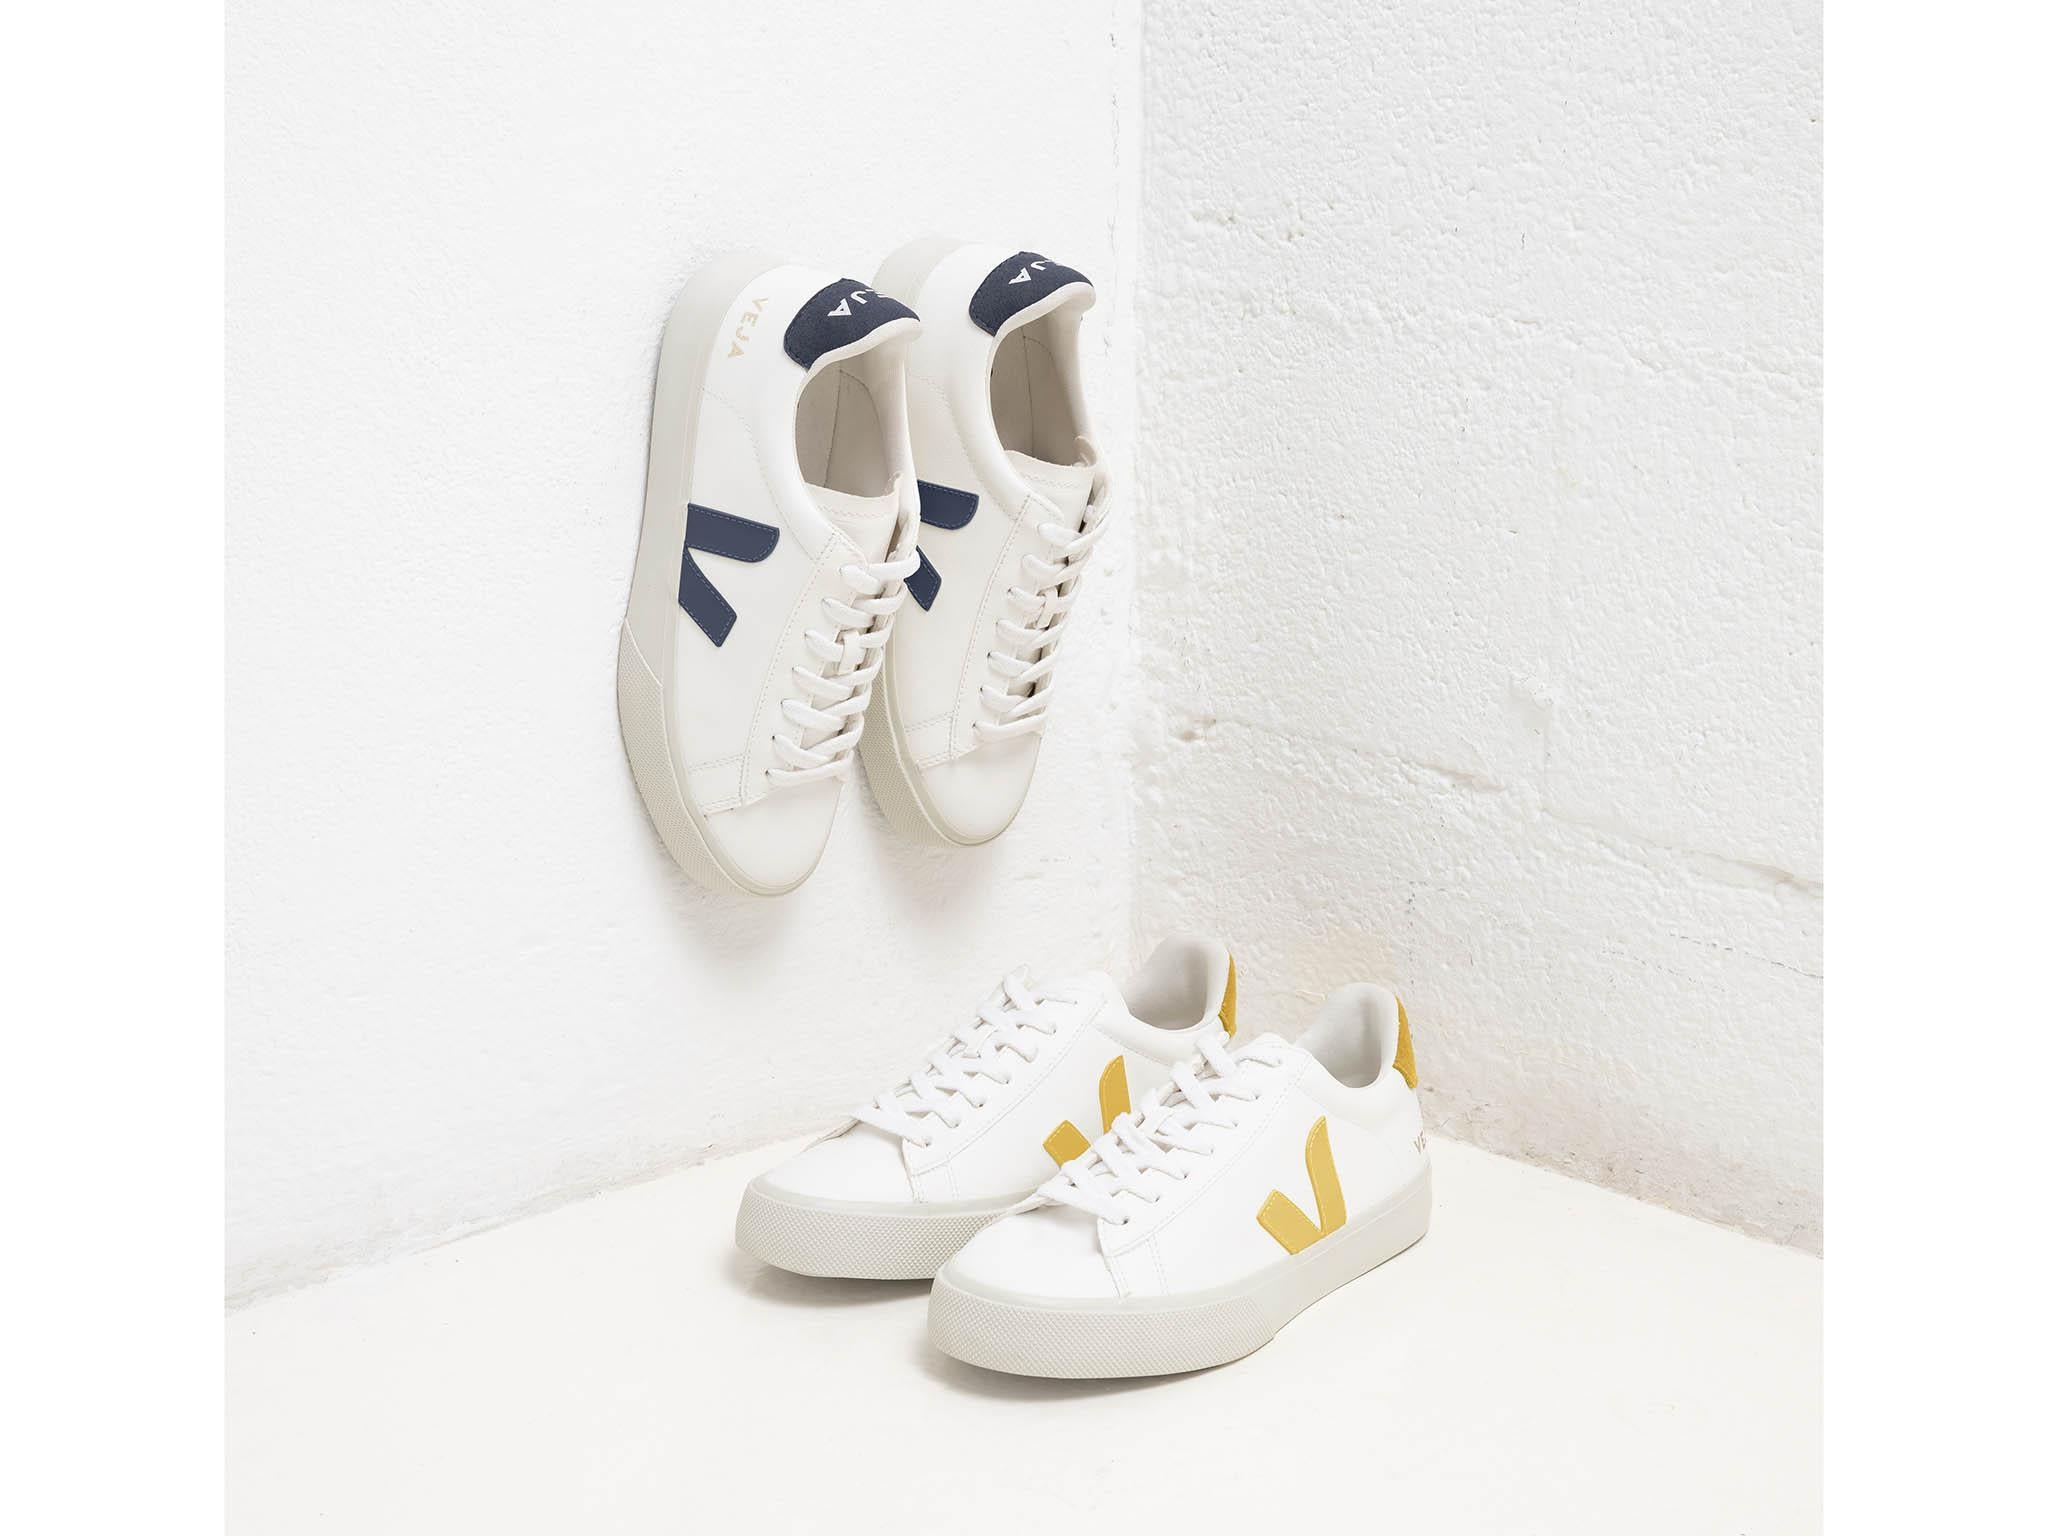 half off 8471a d3ab6 Best women's white trainers: From Adidas Stan Smiths to ...